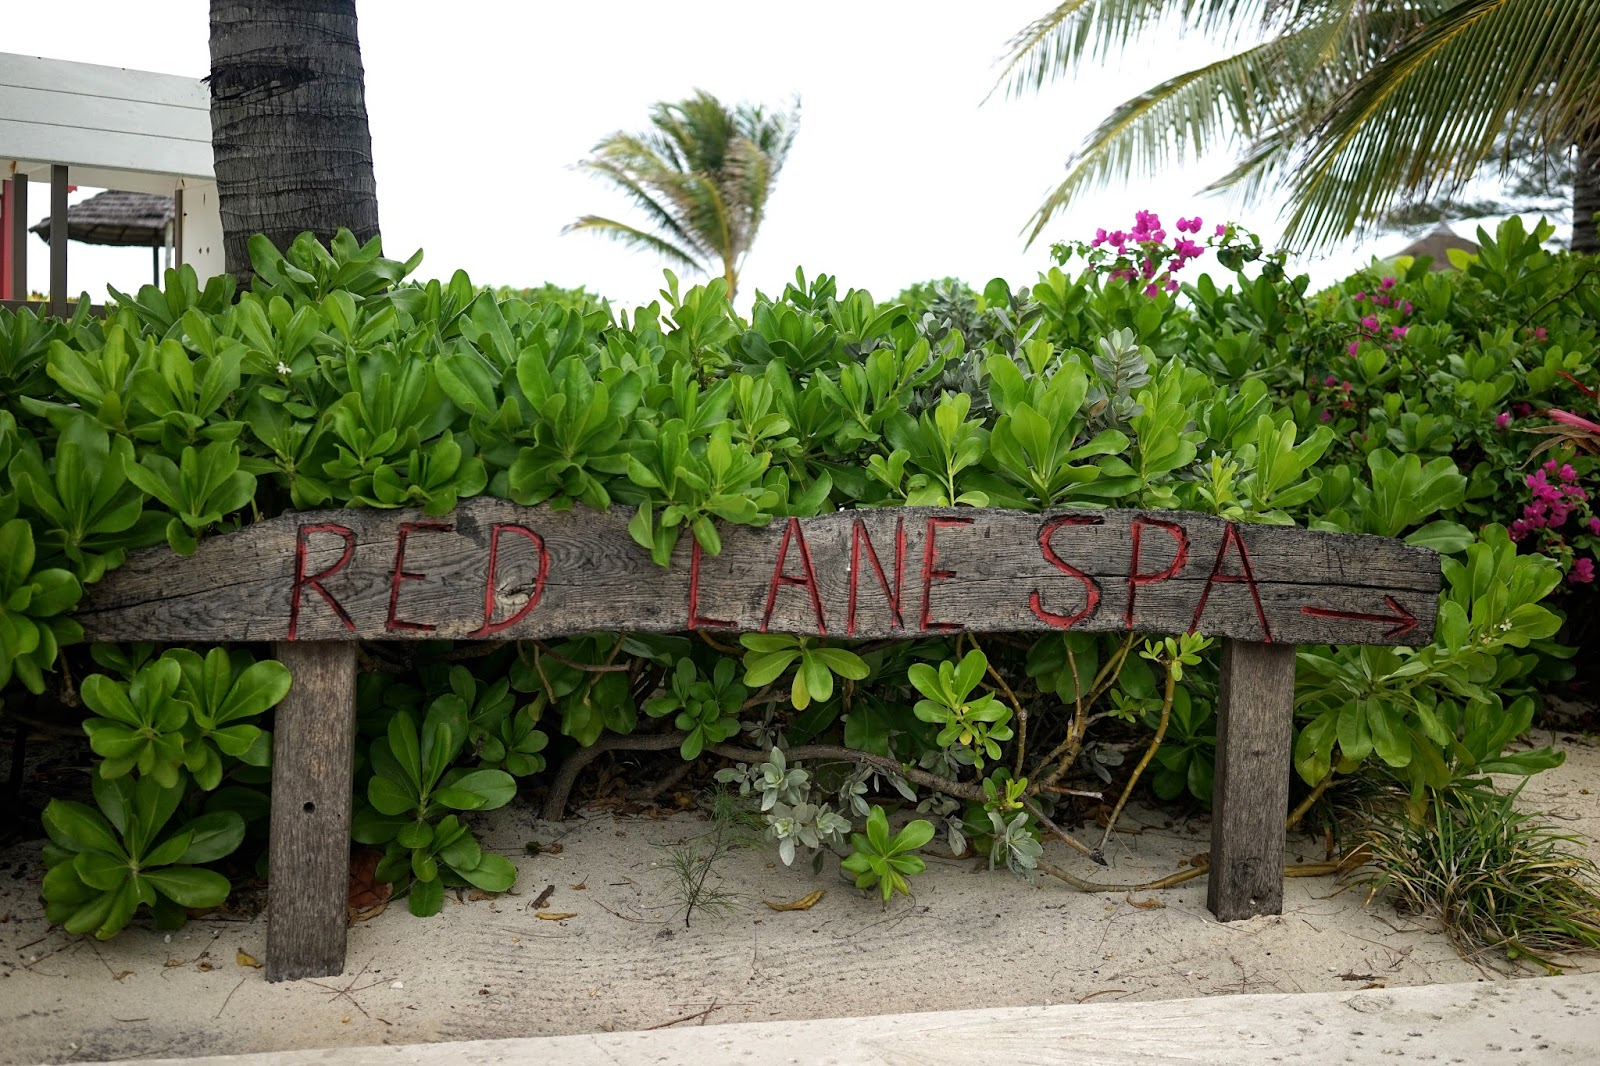 red lane spa nassau